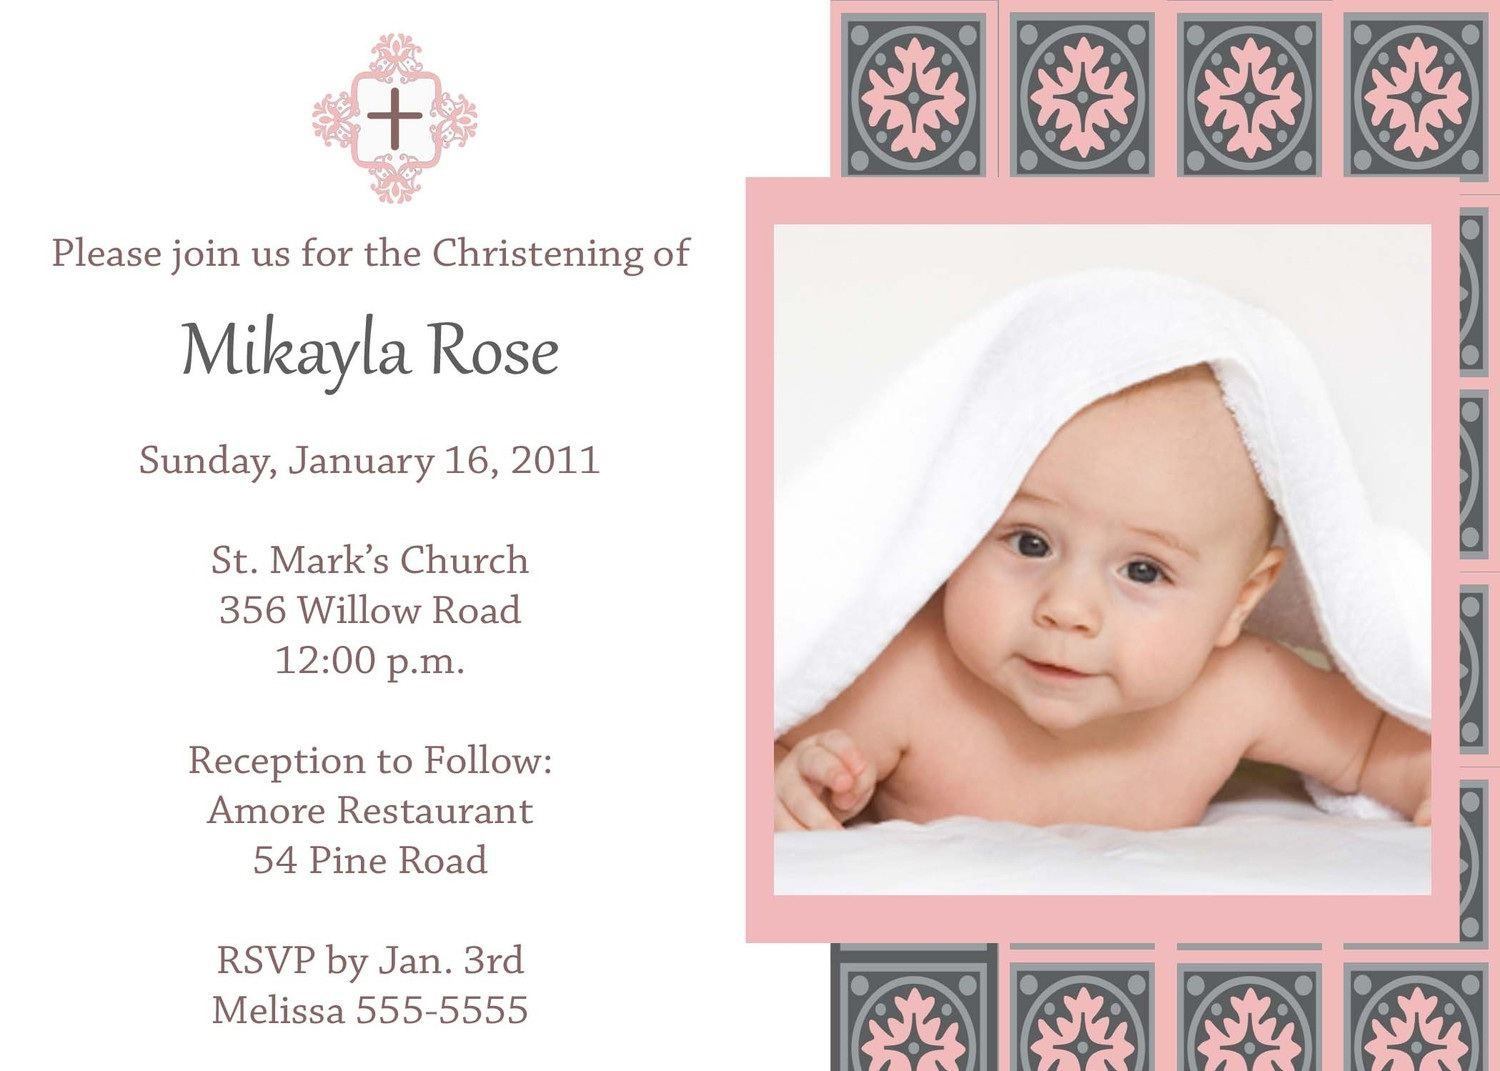 Baby girl baptism invitation free templates costumepartyrun christening invitation for baby girl christening maxwellsz